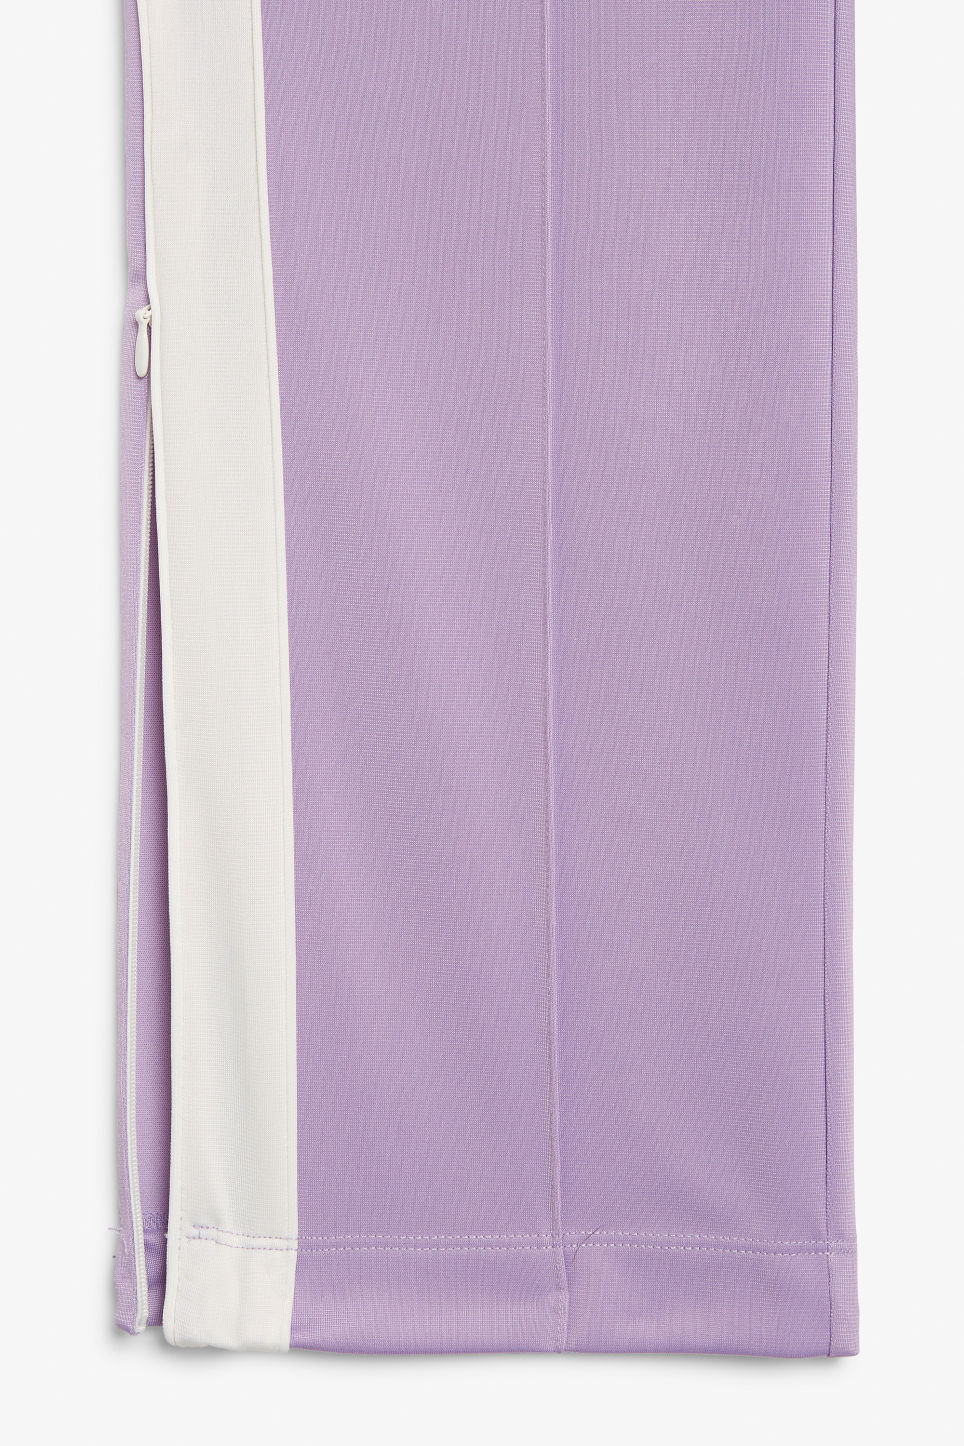 Detailed image of Monki tailored track pants in purple